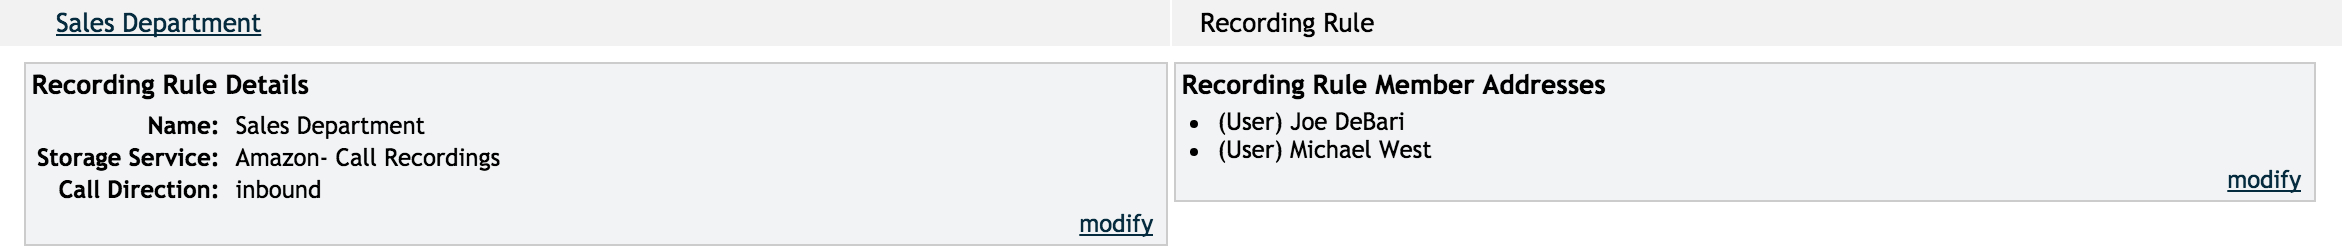 Editing a Call Recording Rule in your OnSIP account